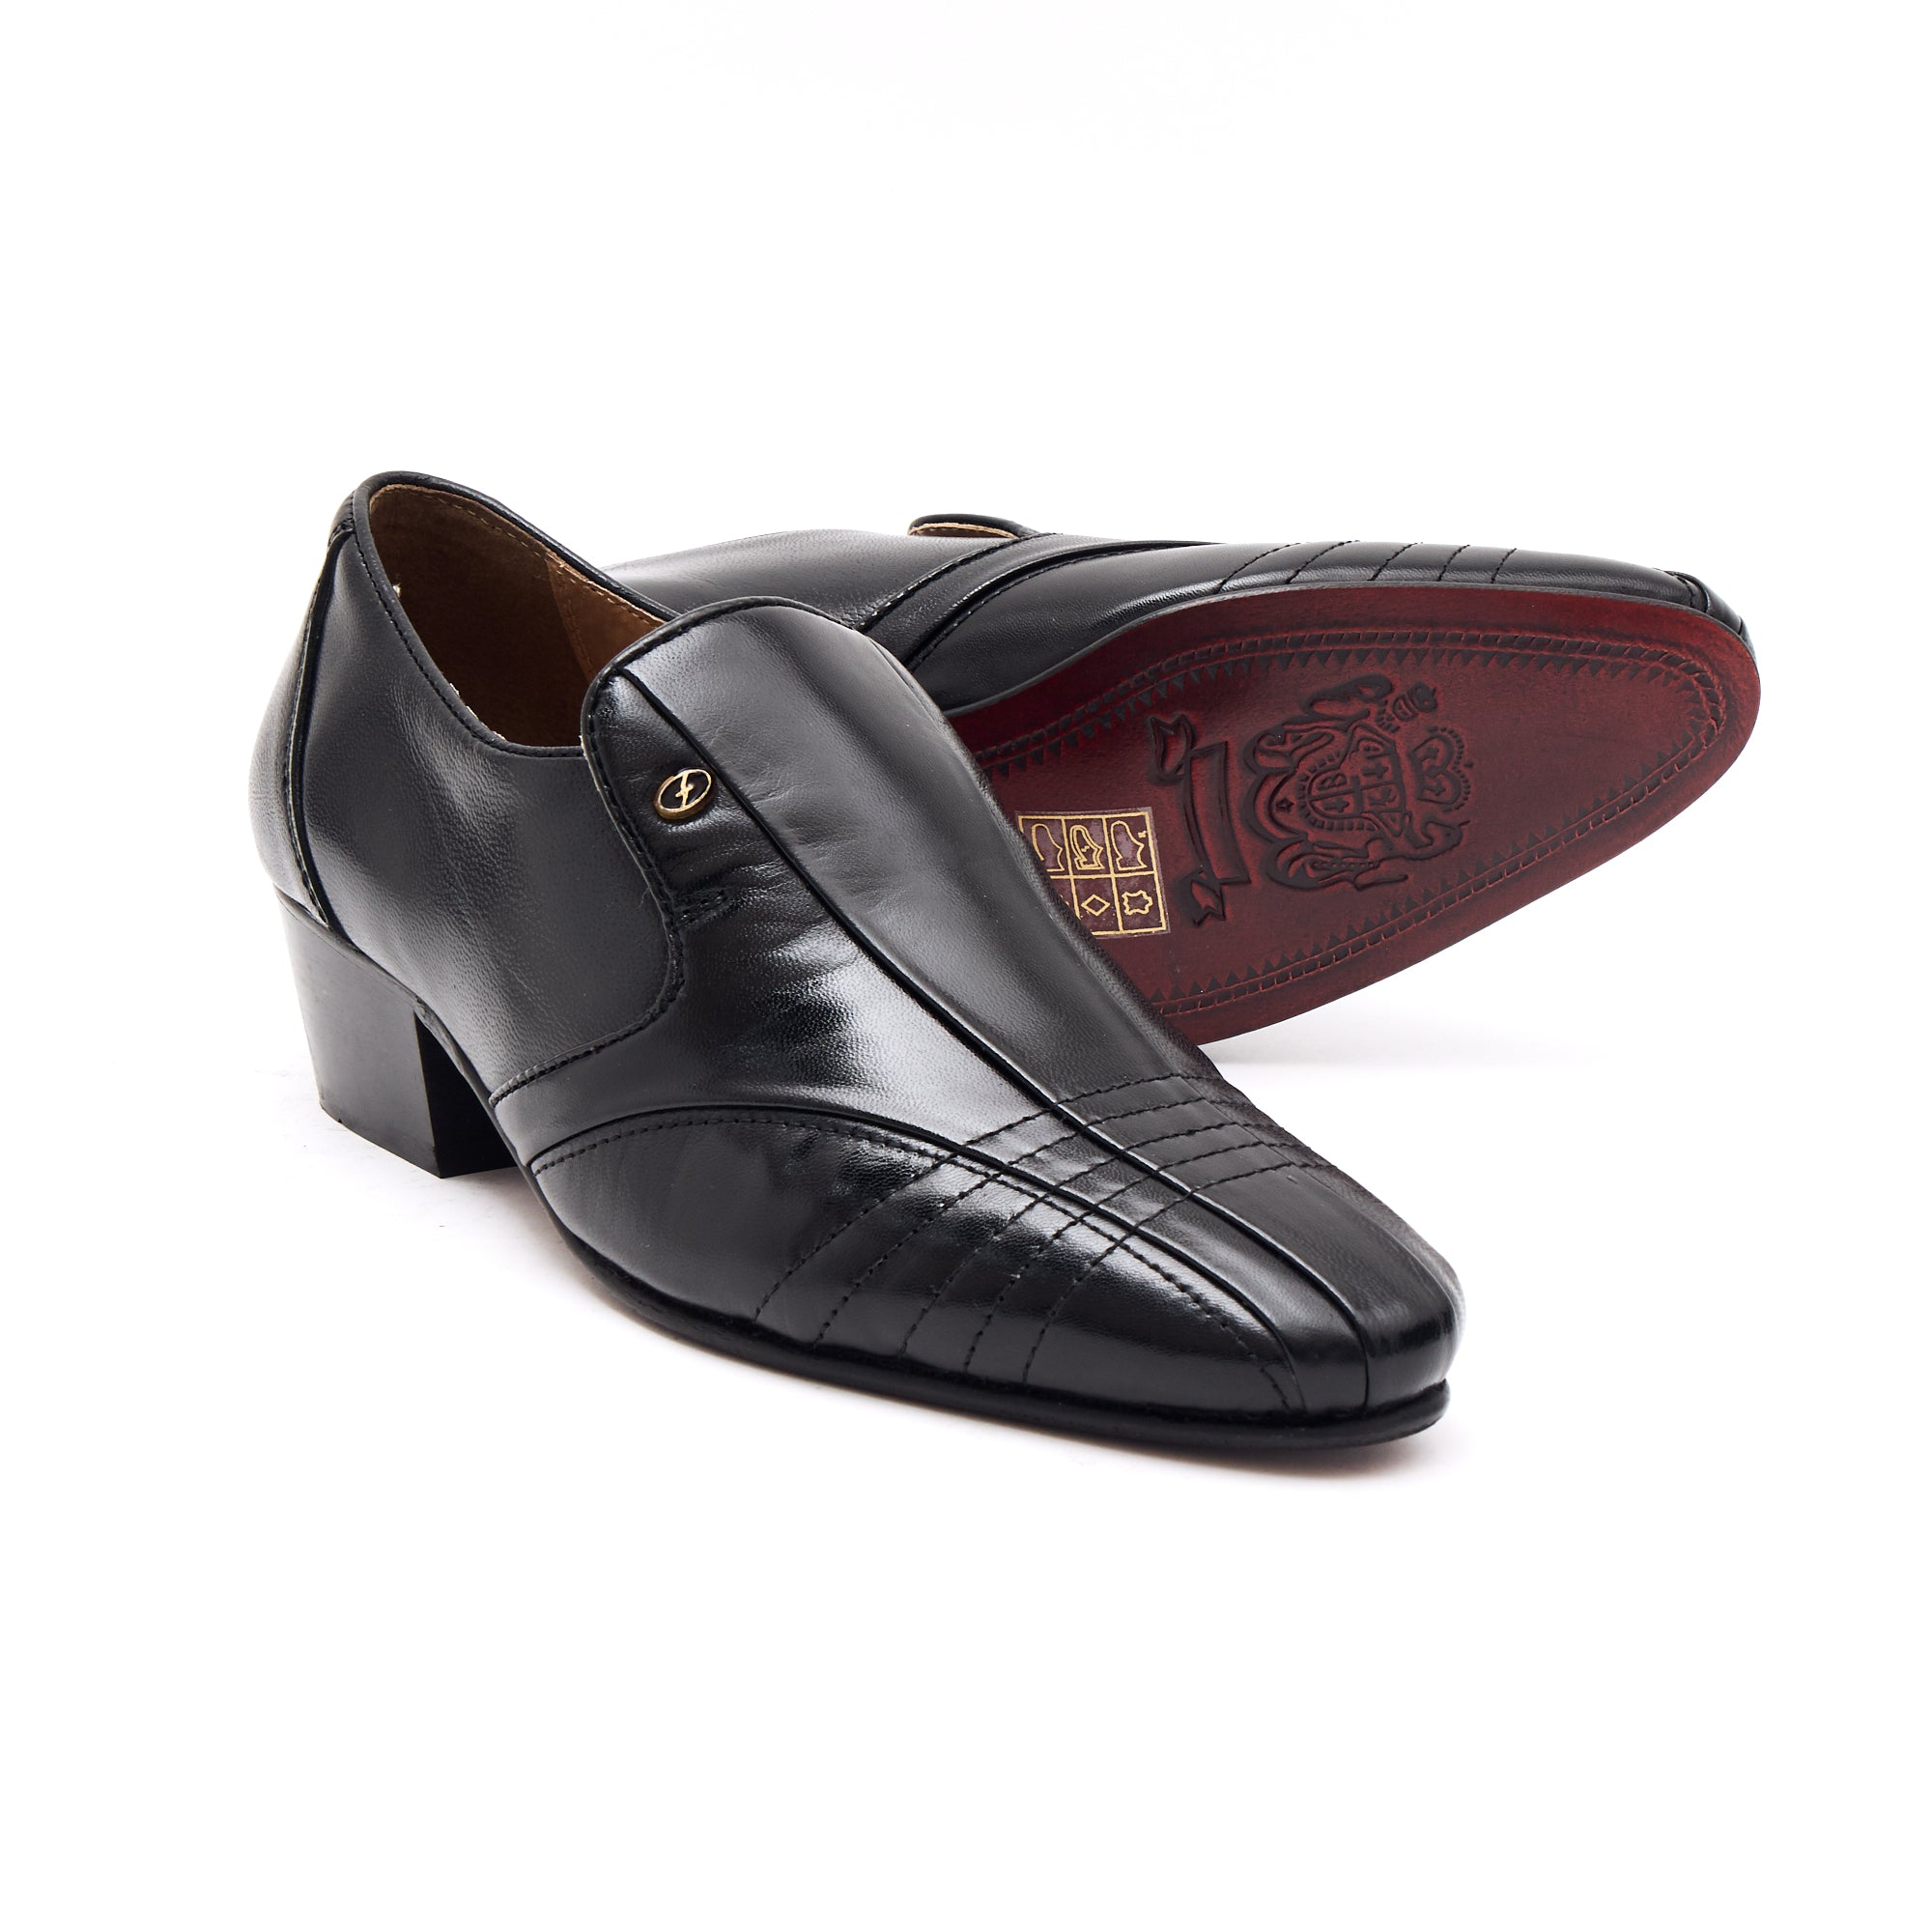 Mens Cuban Heel Leather Shoes- 33477 Black